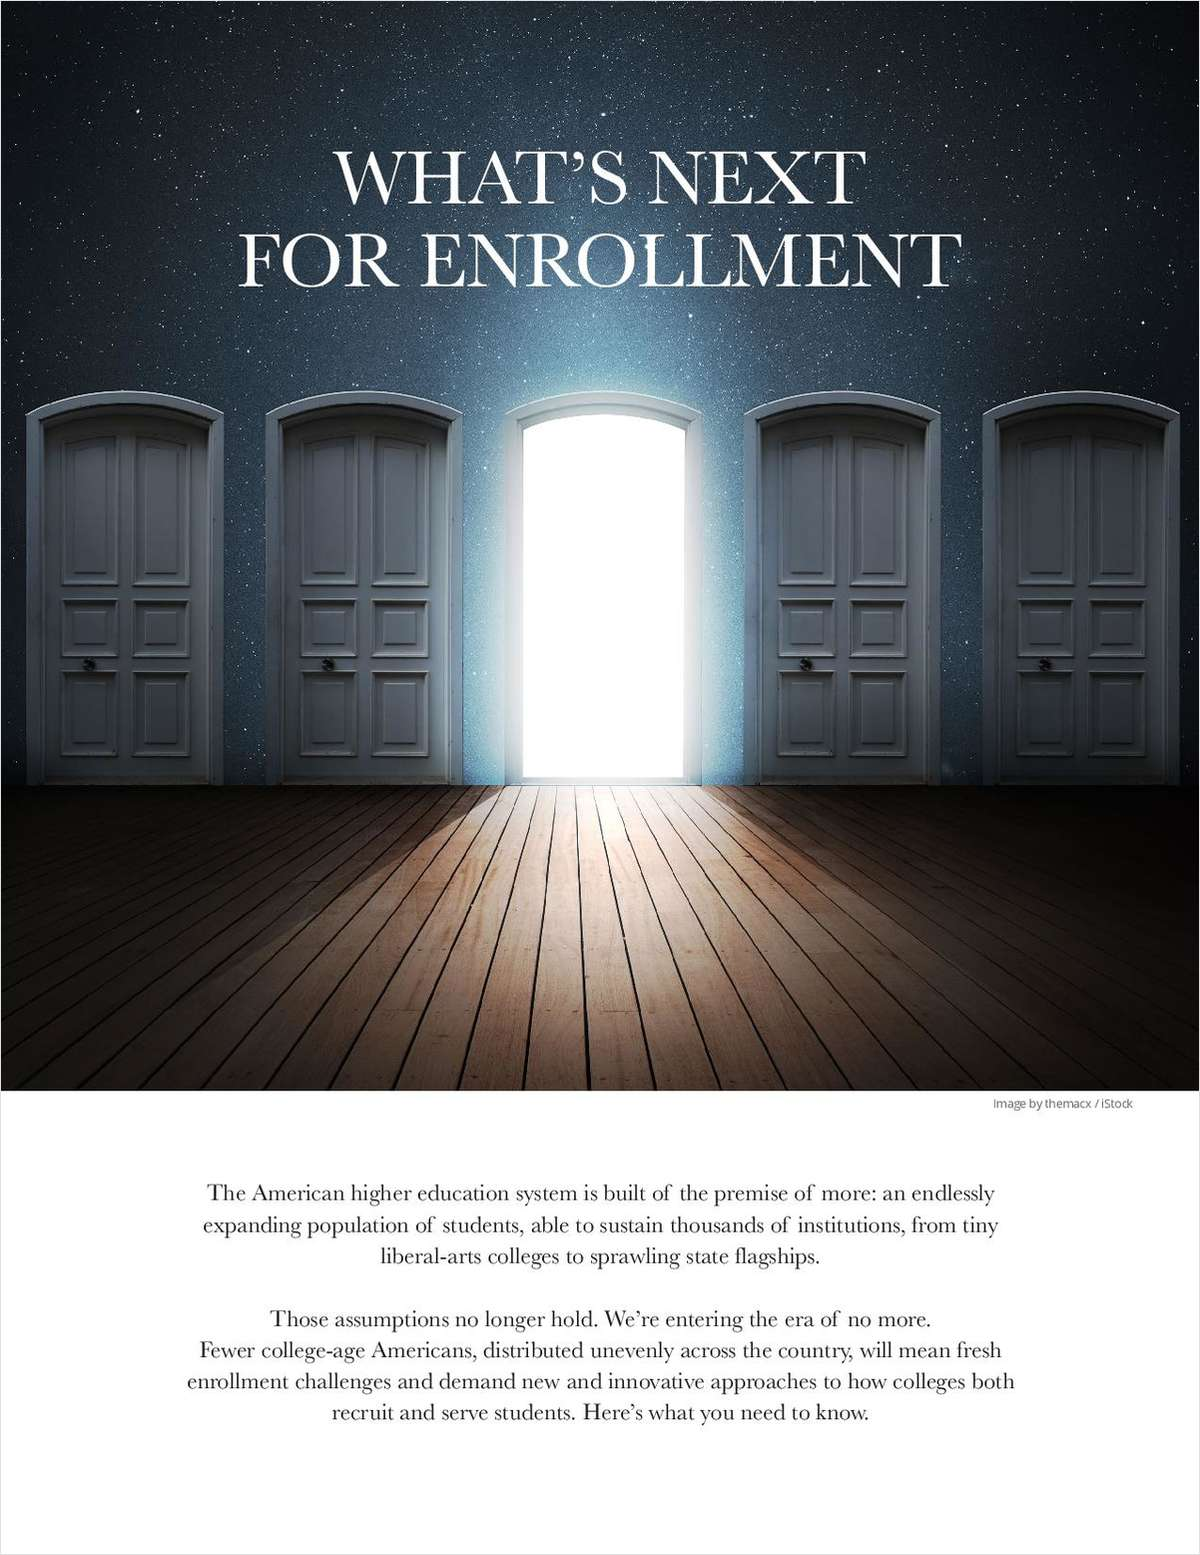 What's Next for Enrollment